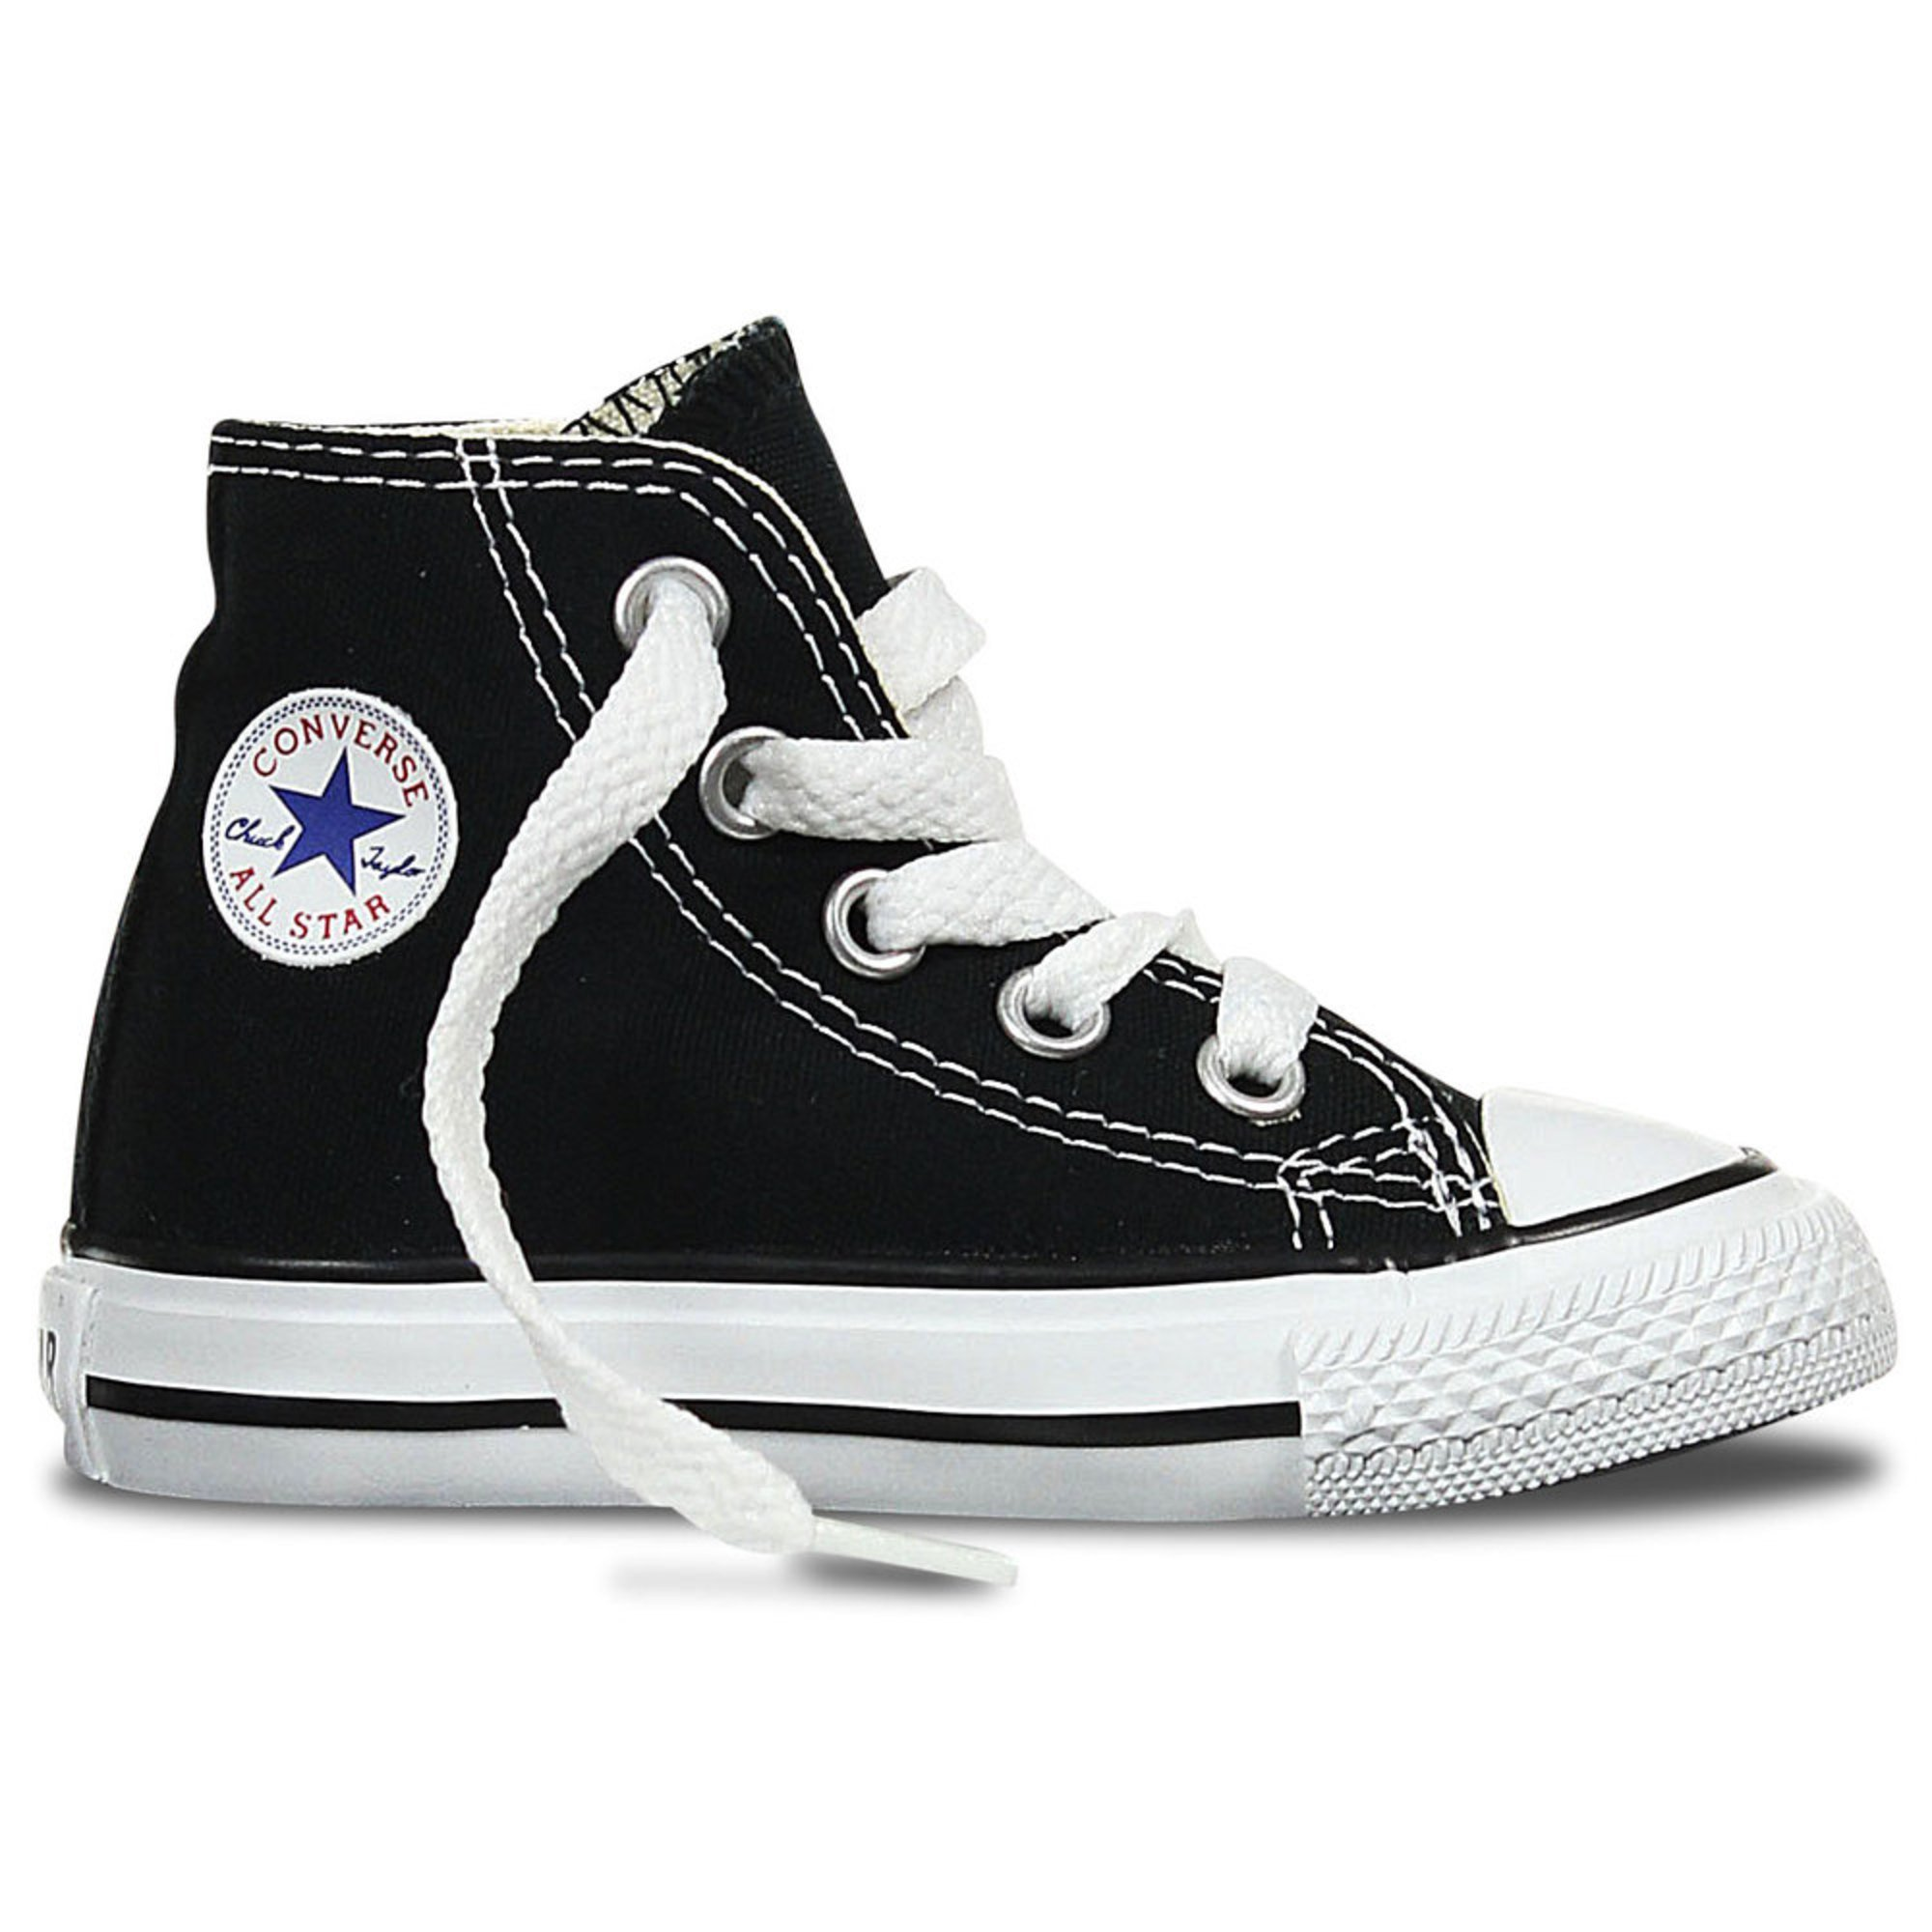 dfc3f00c1313 Converse Boys Chuck Taylor All Star Hi Top Basketball Shoe (infant ...